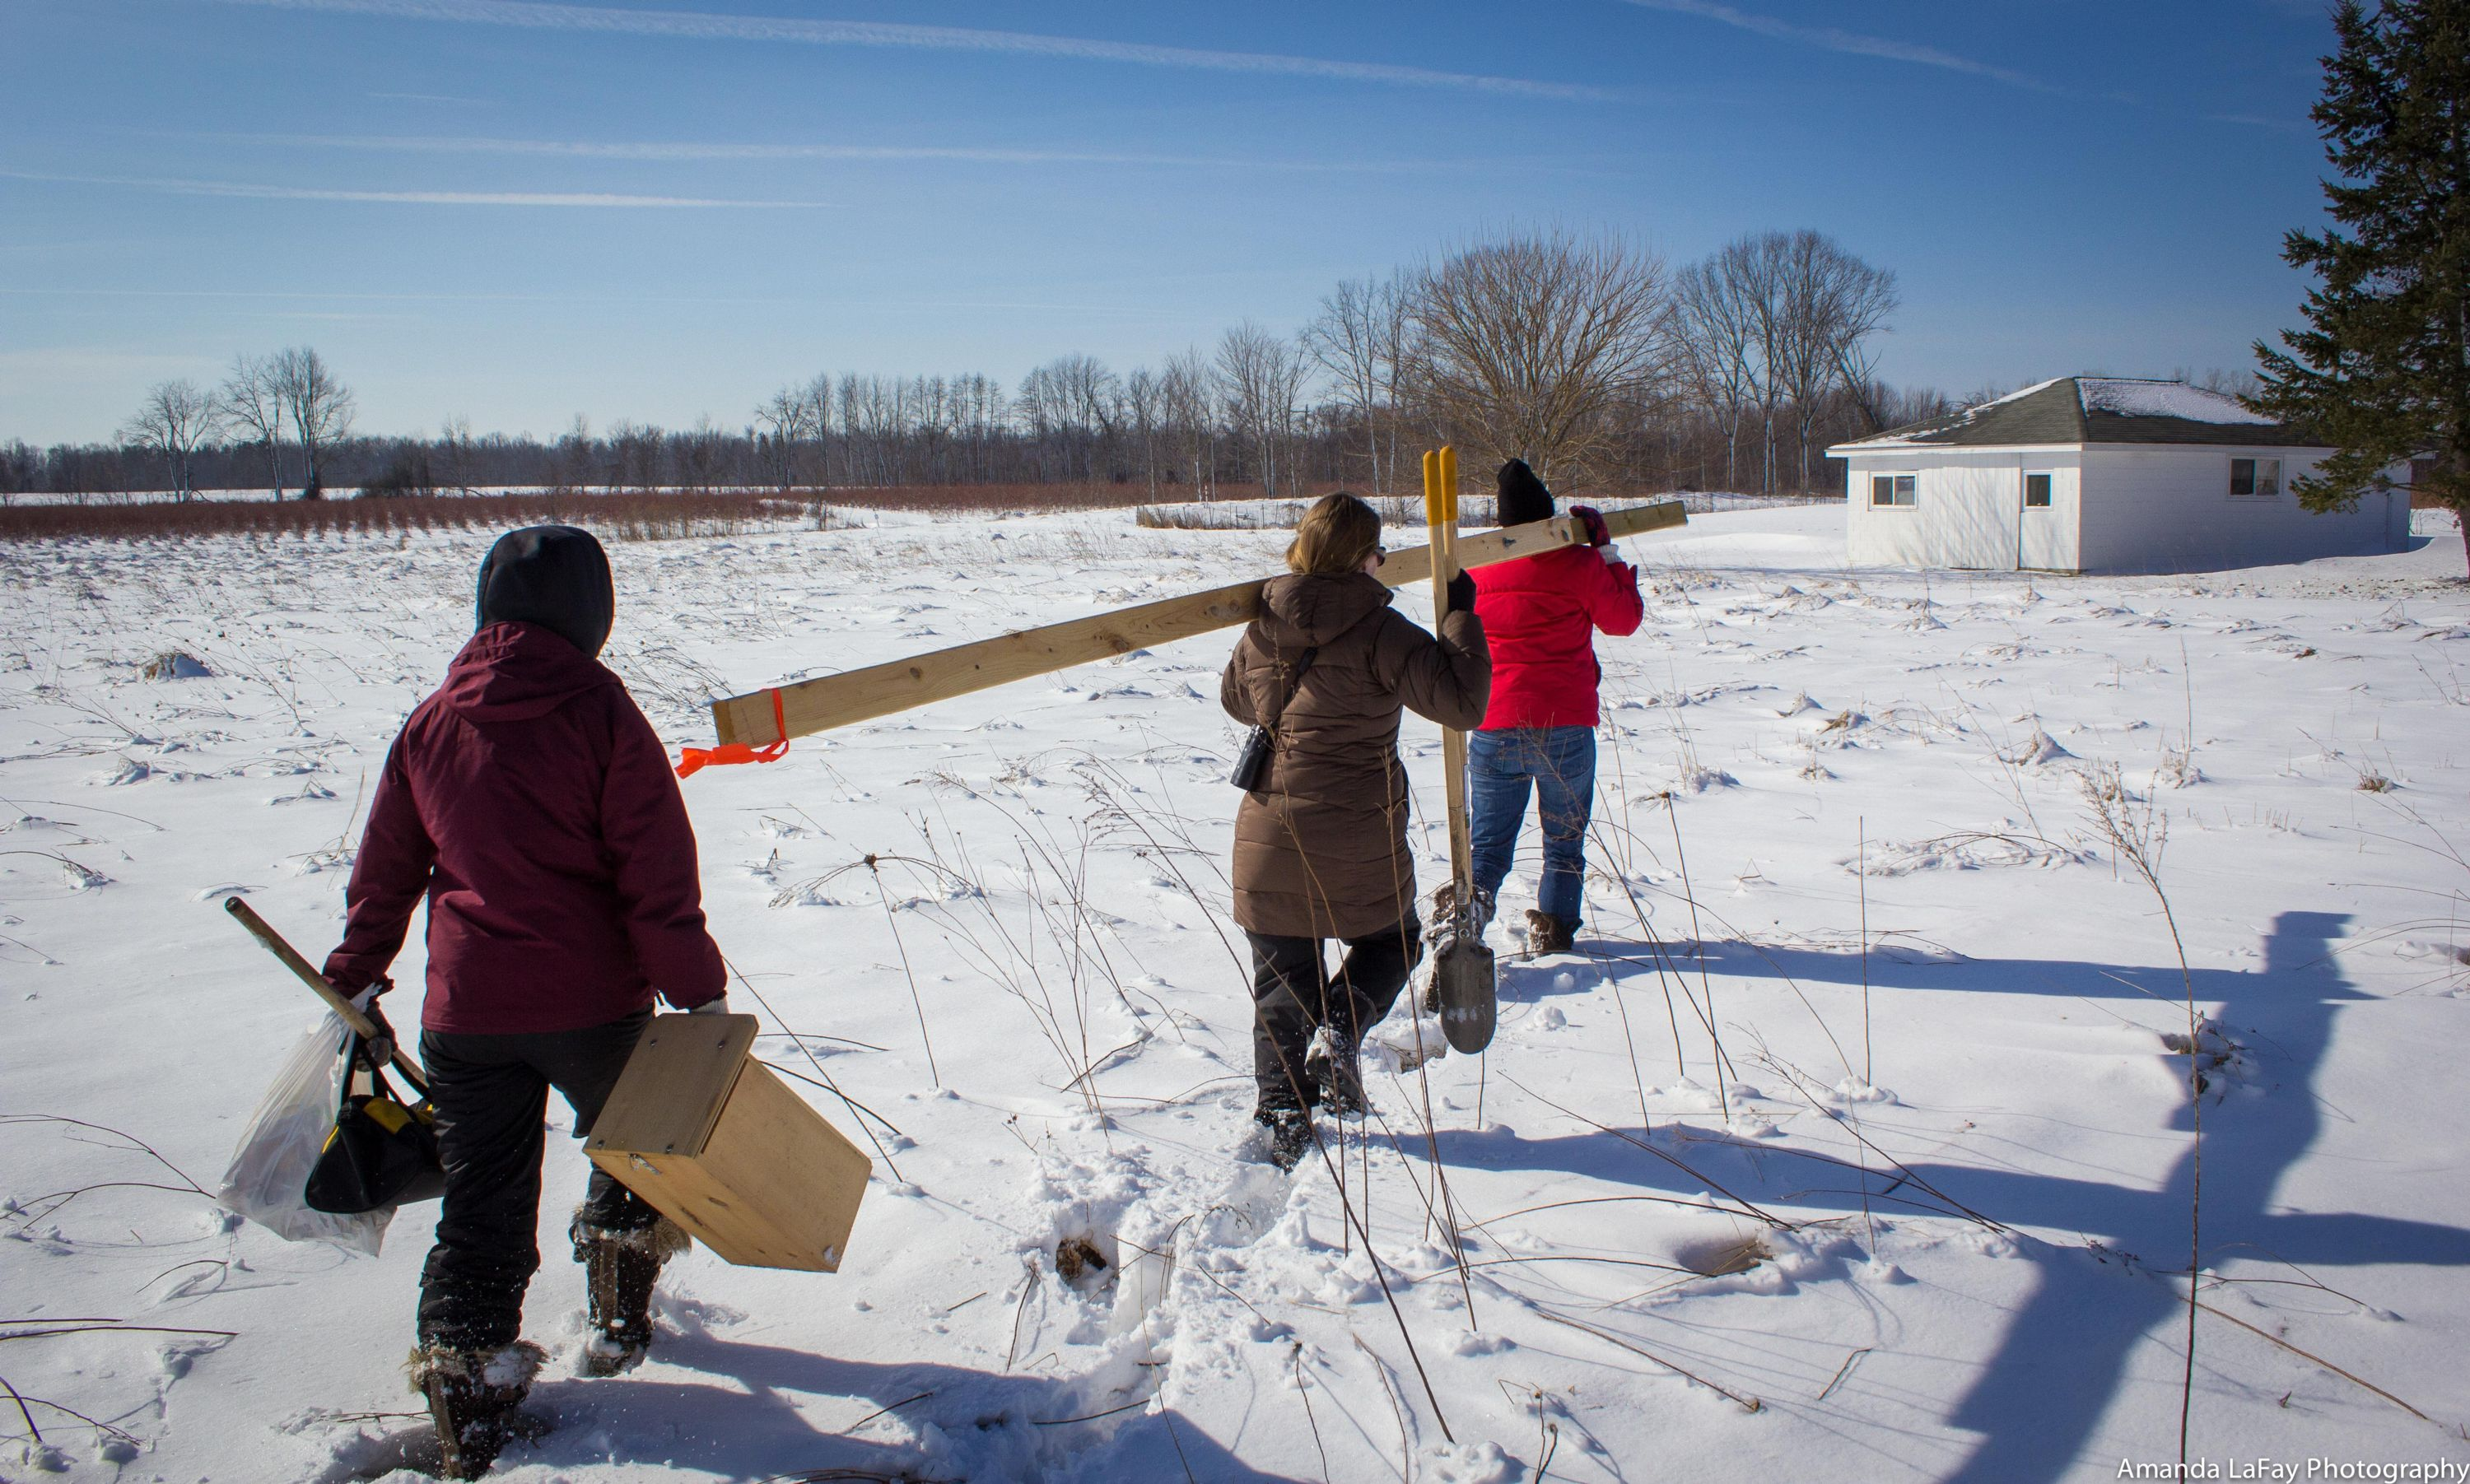 Trekking to box location, February 2016, Van Buren County, Michigan